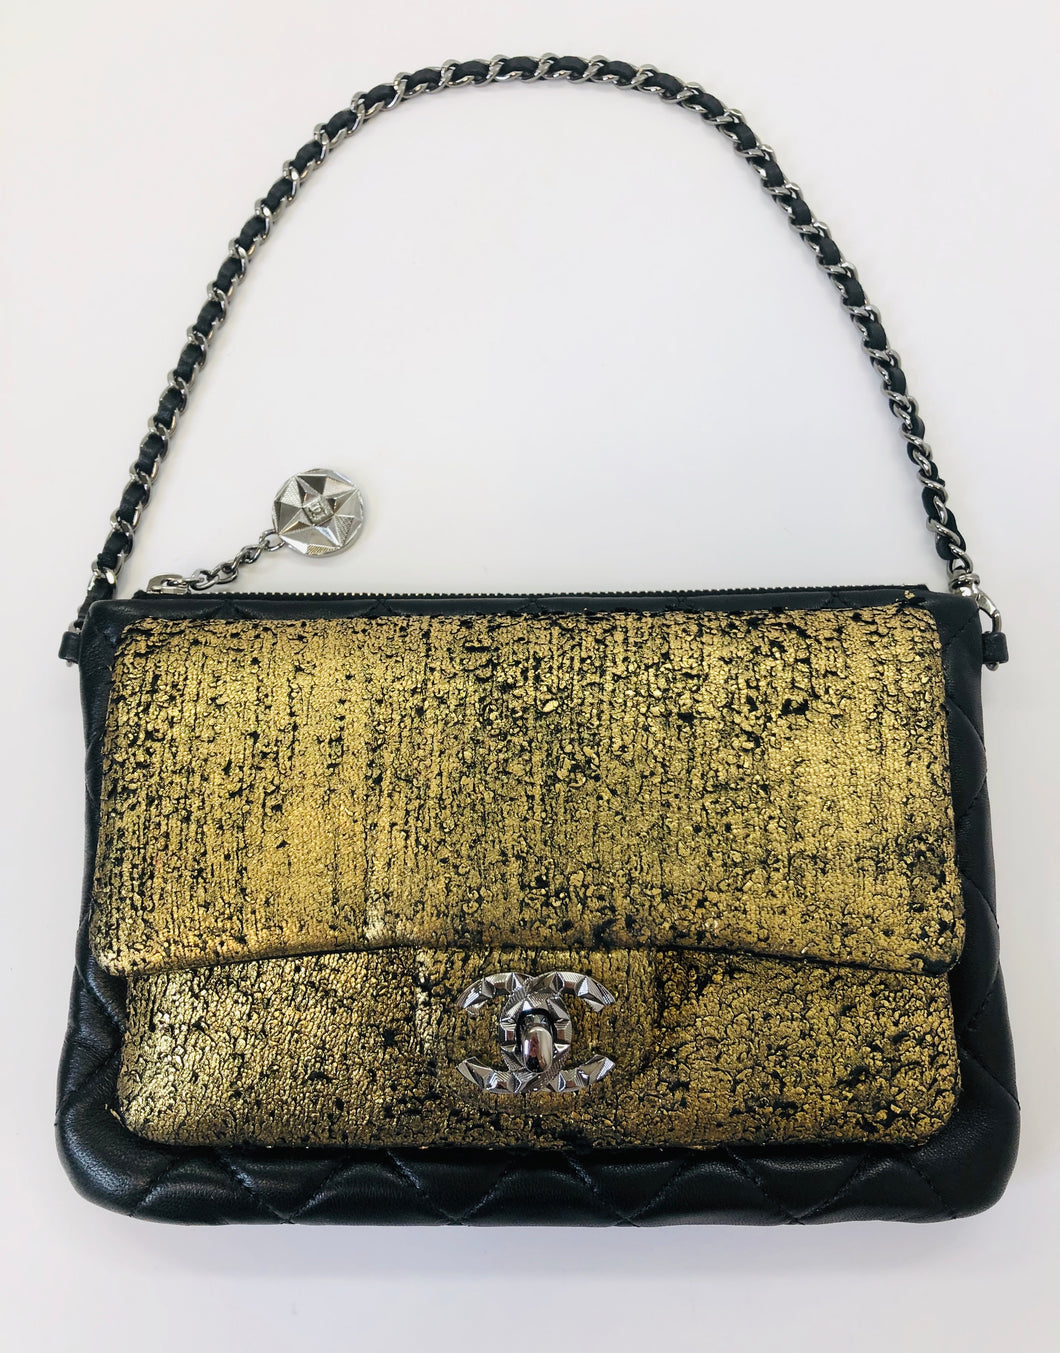 CHANEL Gold and Black Crackled Leather Pochette With Silver Hardware